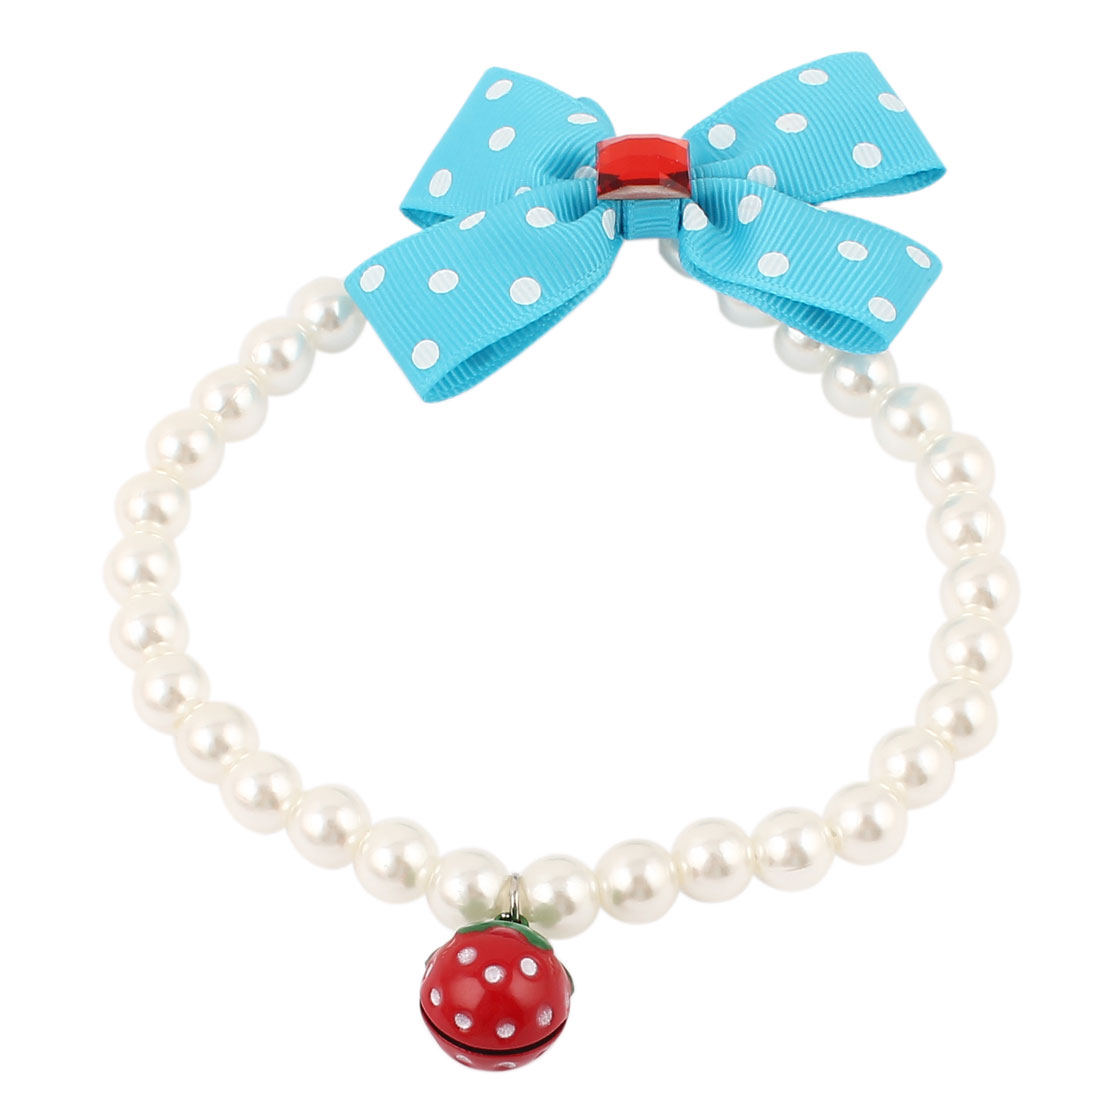 Strawberry Bell Pendant Bowknot Accent Pet Dog Plastic Beads Pearls Collar Necklace White Blue M